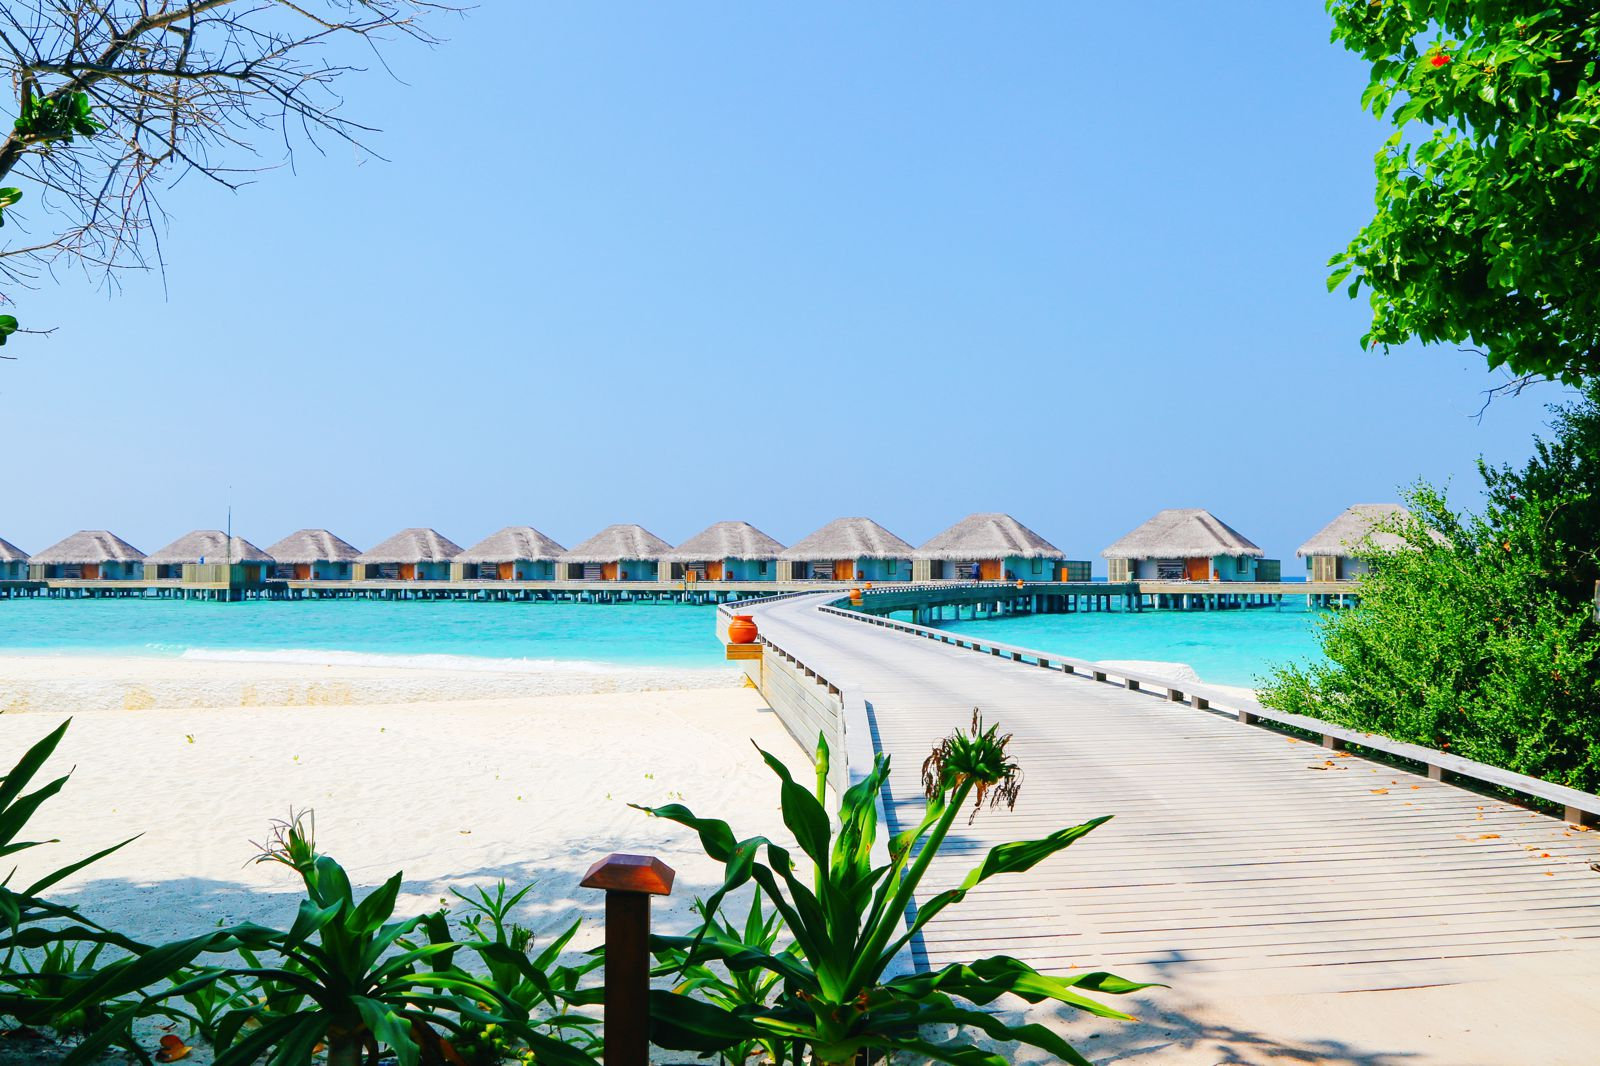 Arrival At The Dusit Thani In The Maldives! (13)